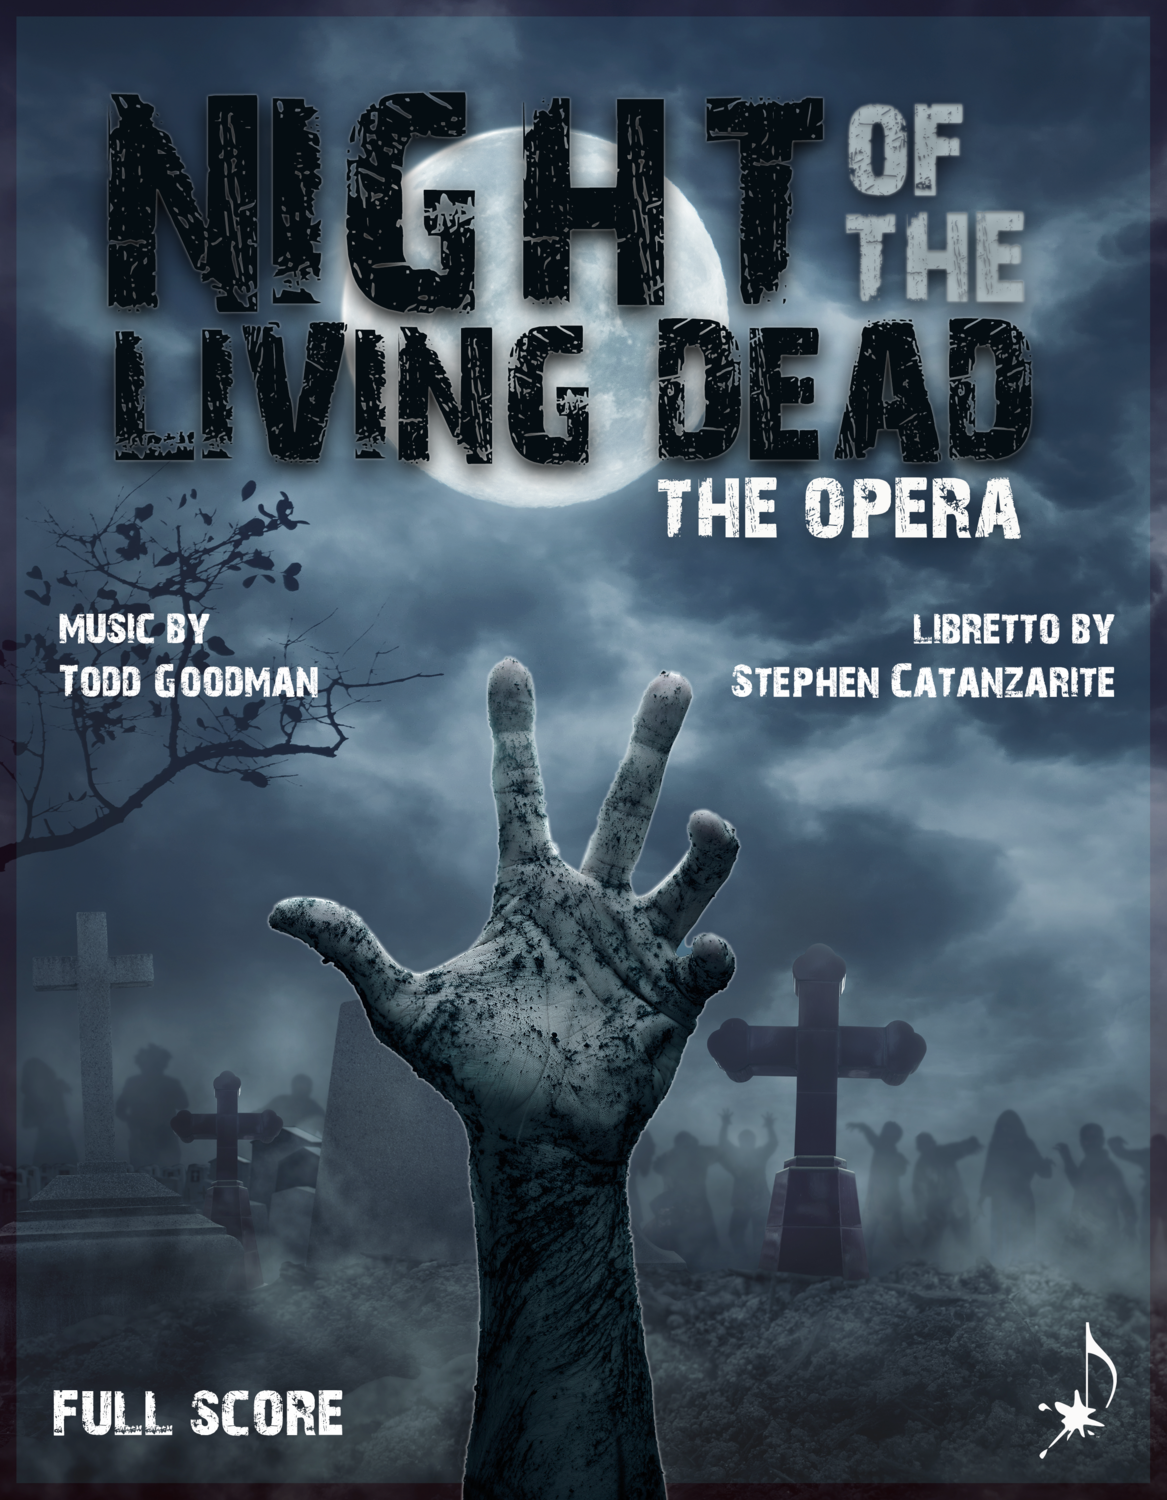 Night of the Living Dead, the opera - Full Score, by Todd Goodman